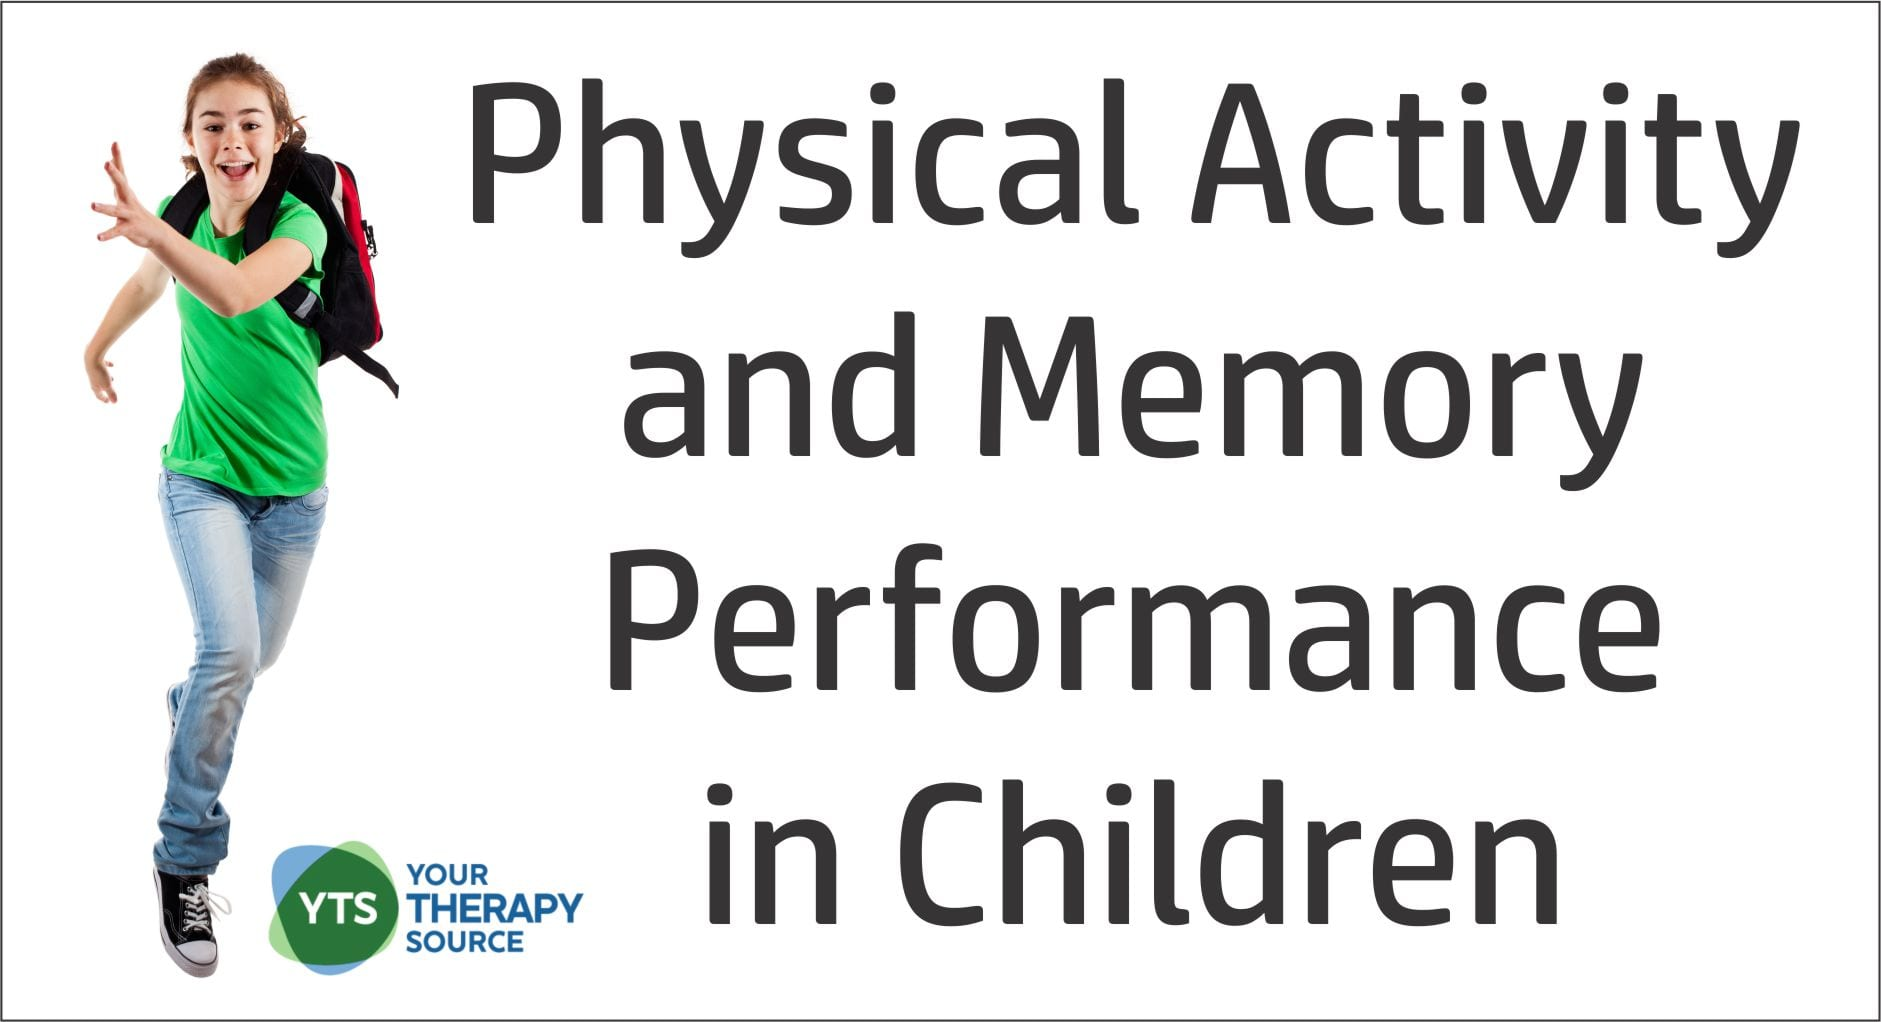 A recent article in the Psychology of Sports and Exercise reported on a study examing the effects of specifically designed physical activities on children's foreign language vocabulary learning and attentional performance. The researchers examined physical activity and memory performance in children.